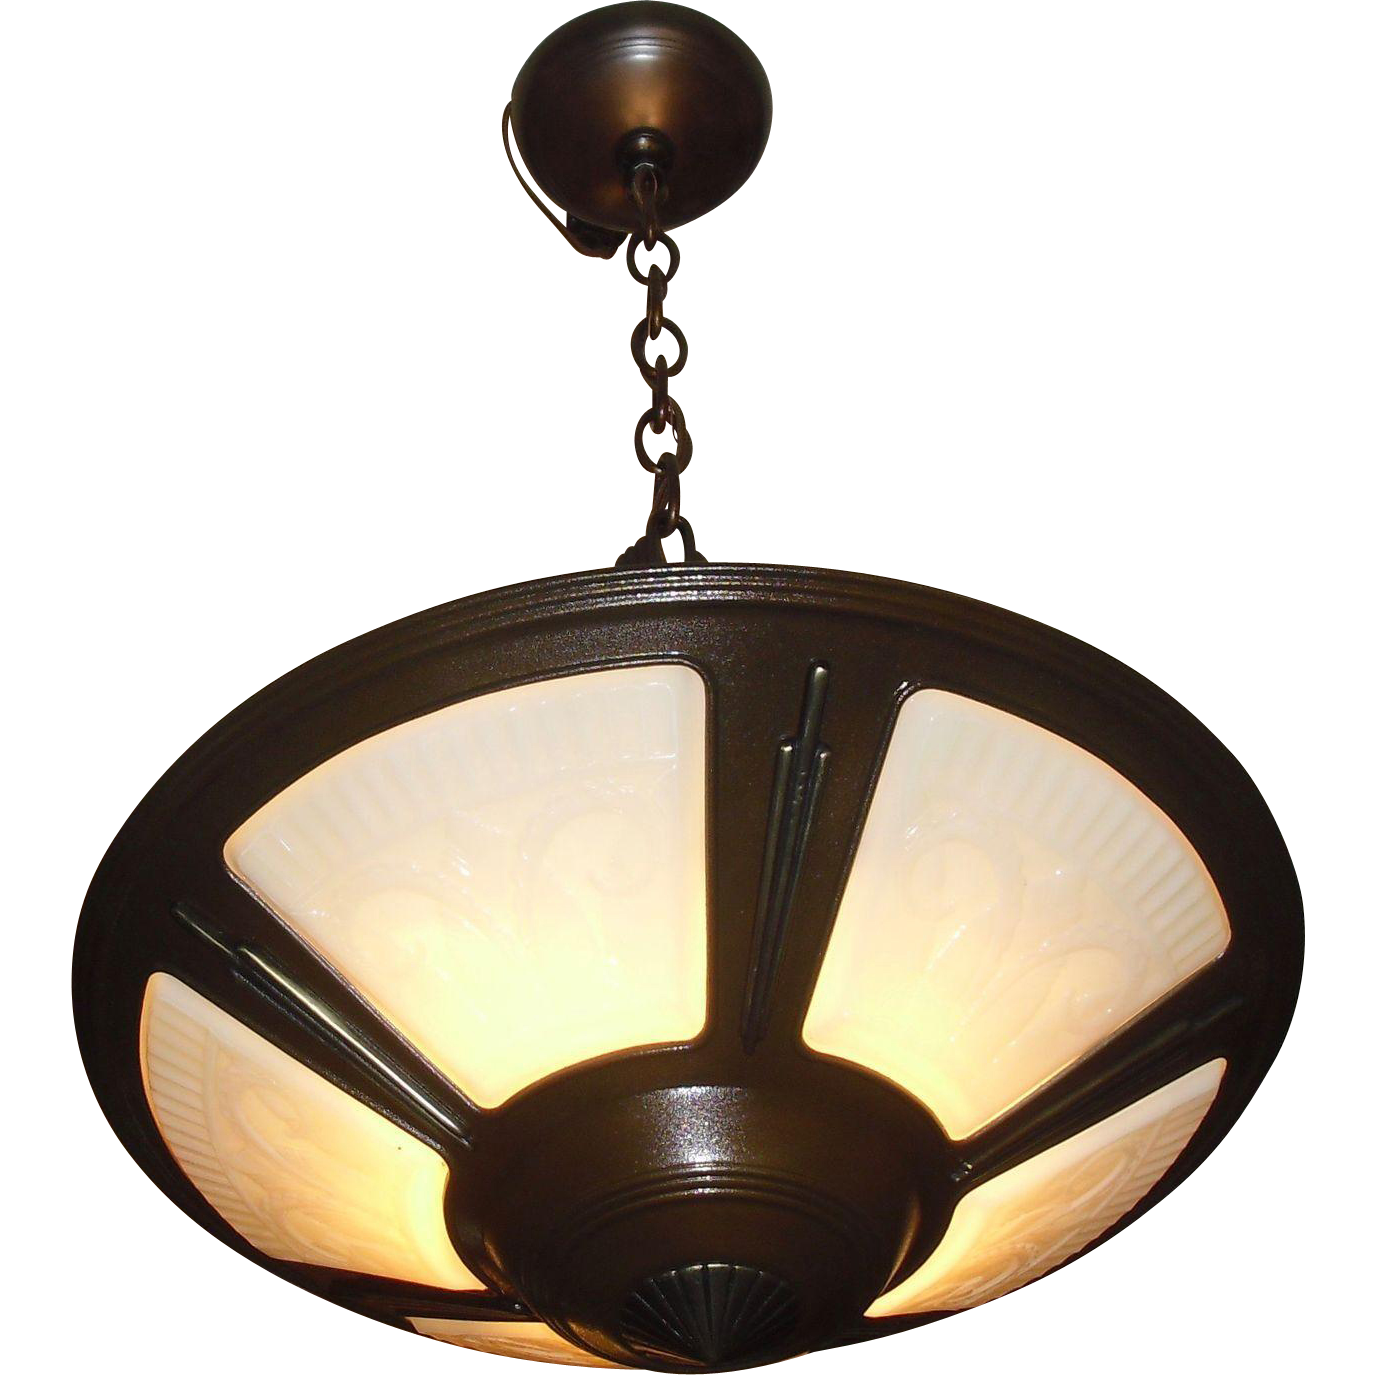 Virden Art Deco 5 Light Pendant Chandelier